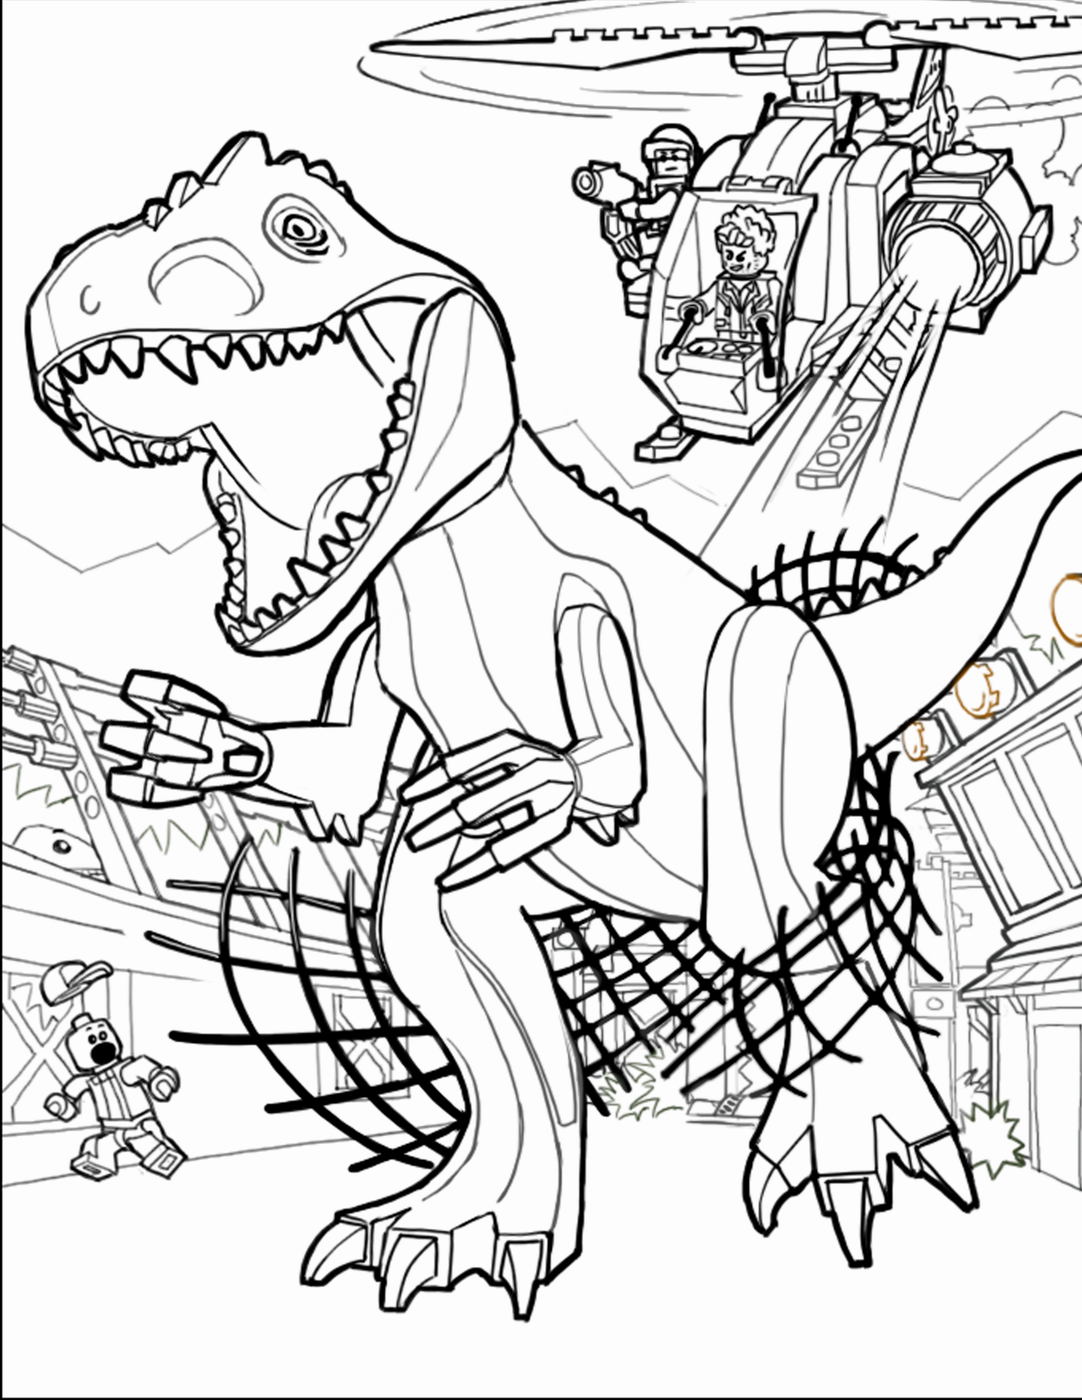 lego jurassic world coloring pages LEGO Coloring Pages Jurassic World | Printables | Lego coloring  lego jurassic world coloring pages